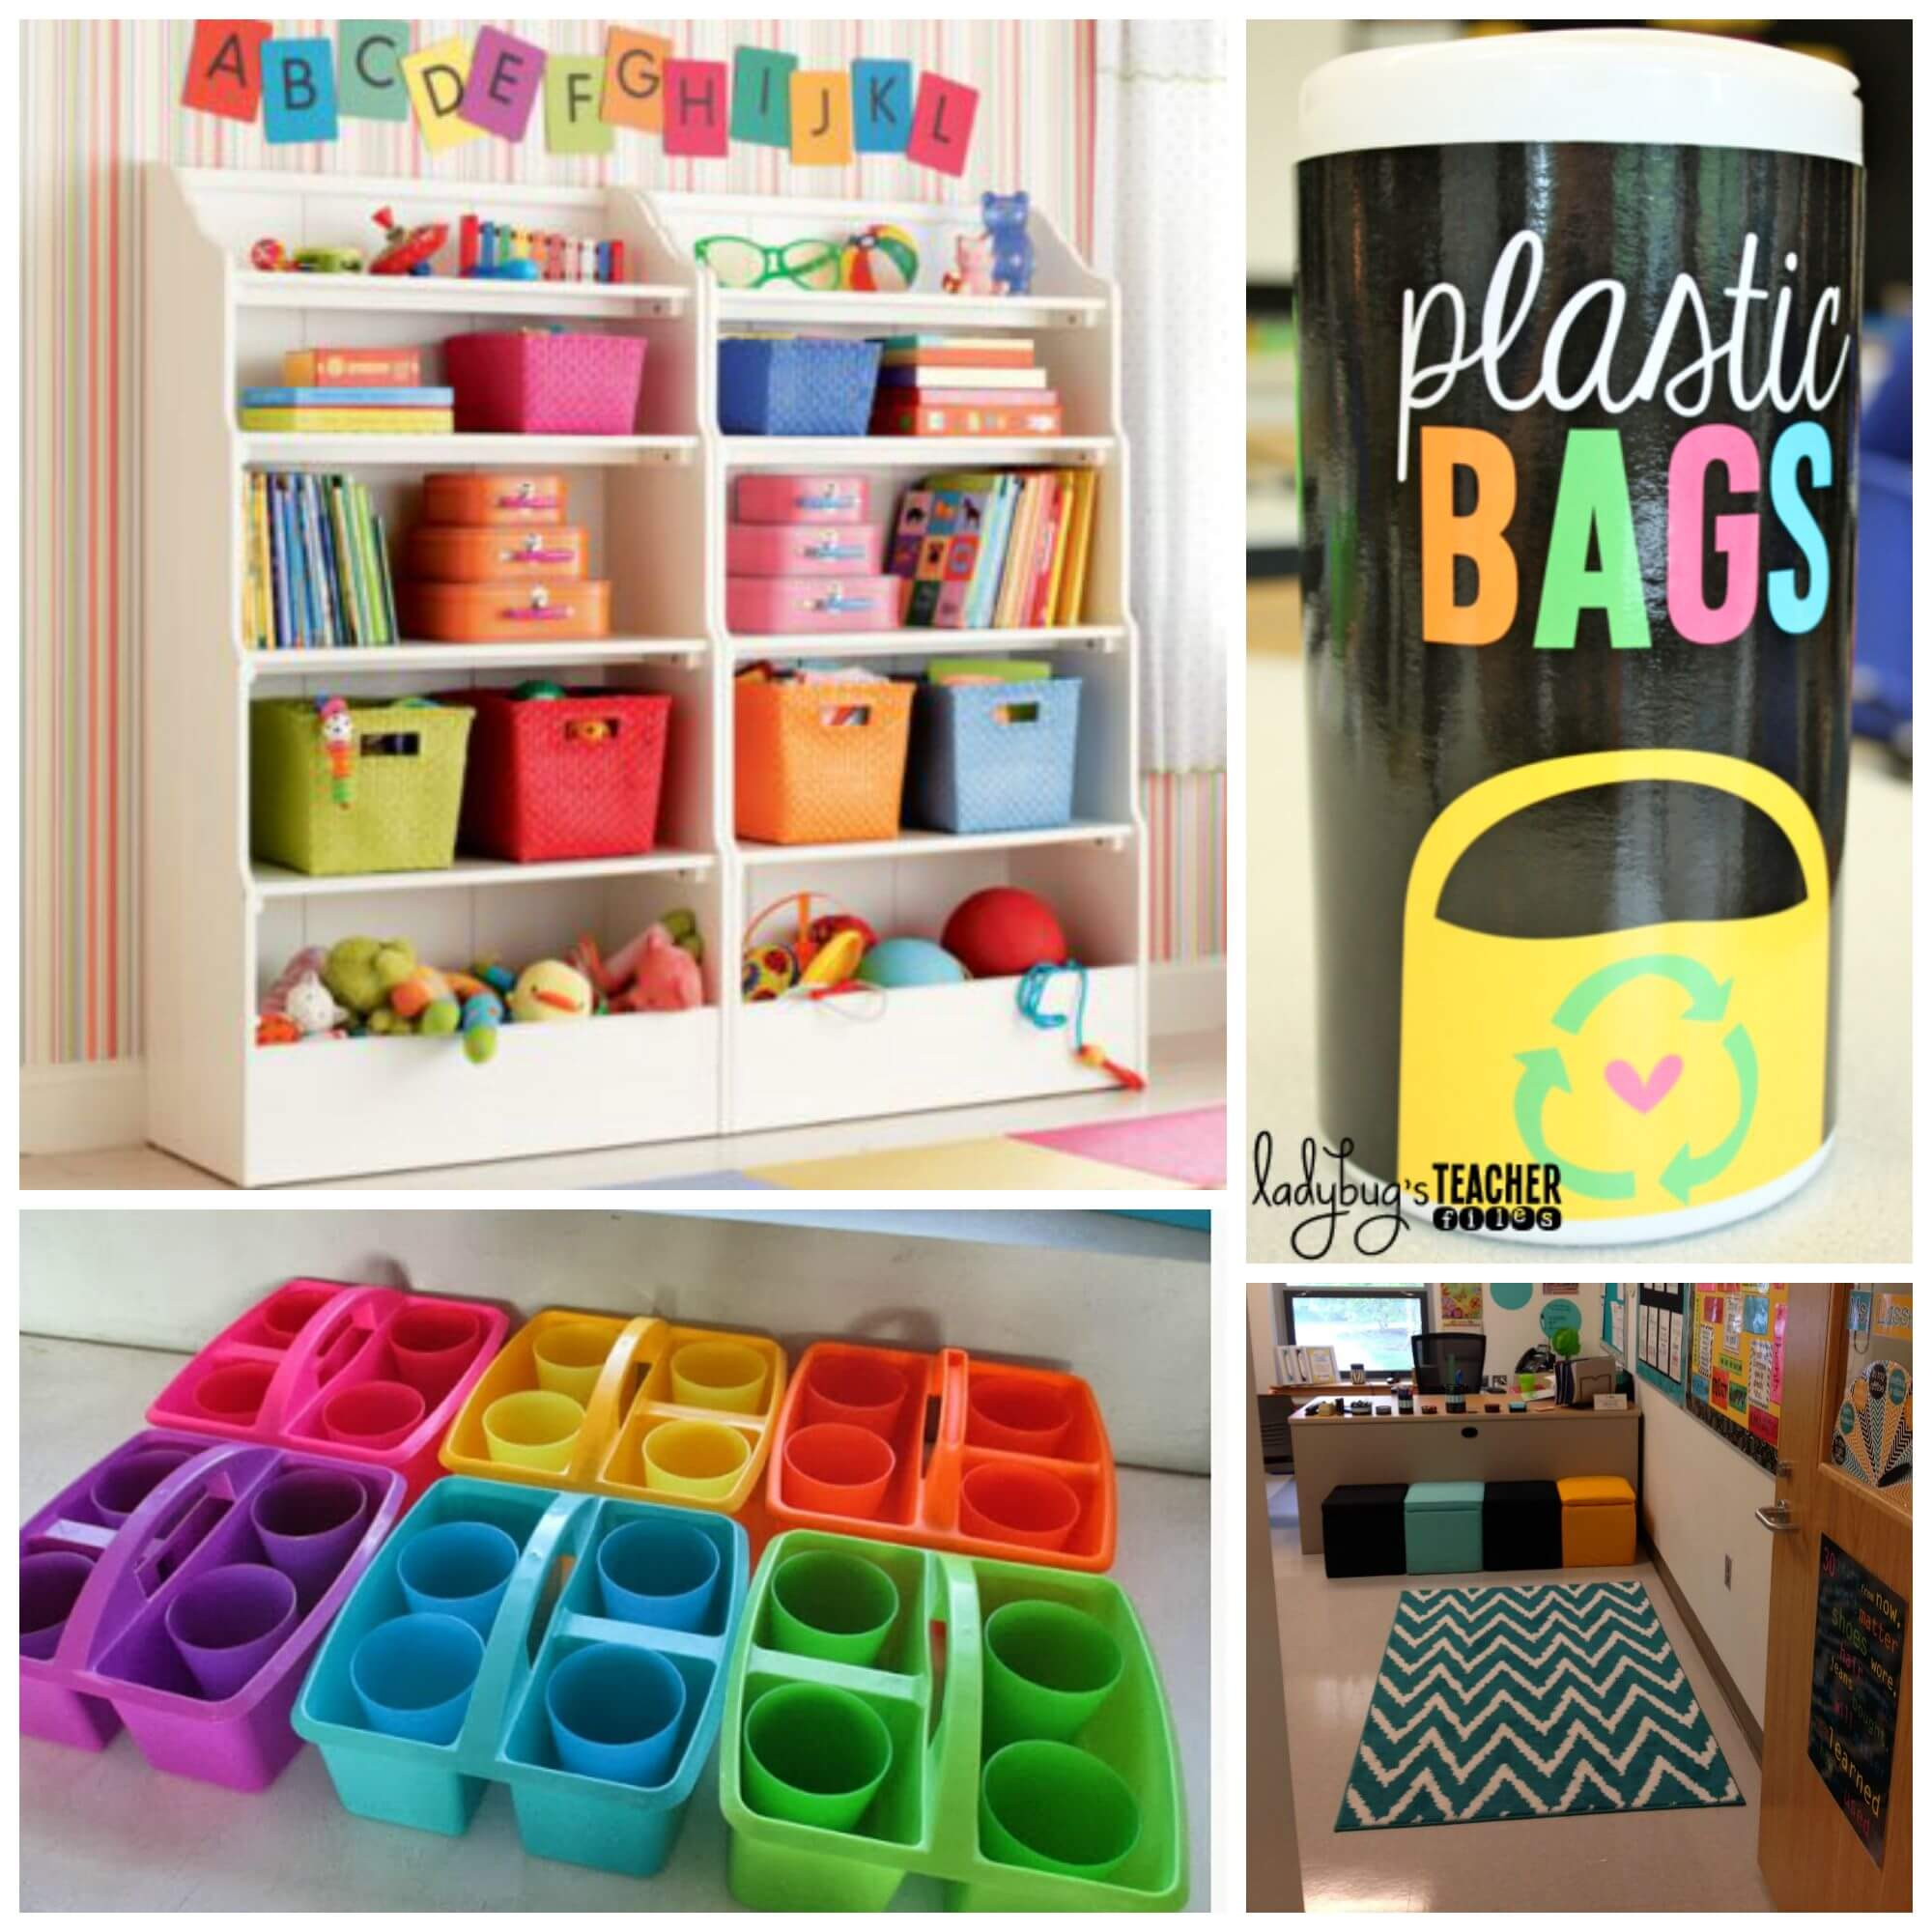 Ideas In Classroom ~ Inspiring classroom decoration ideas playdough to plato